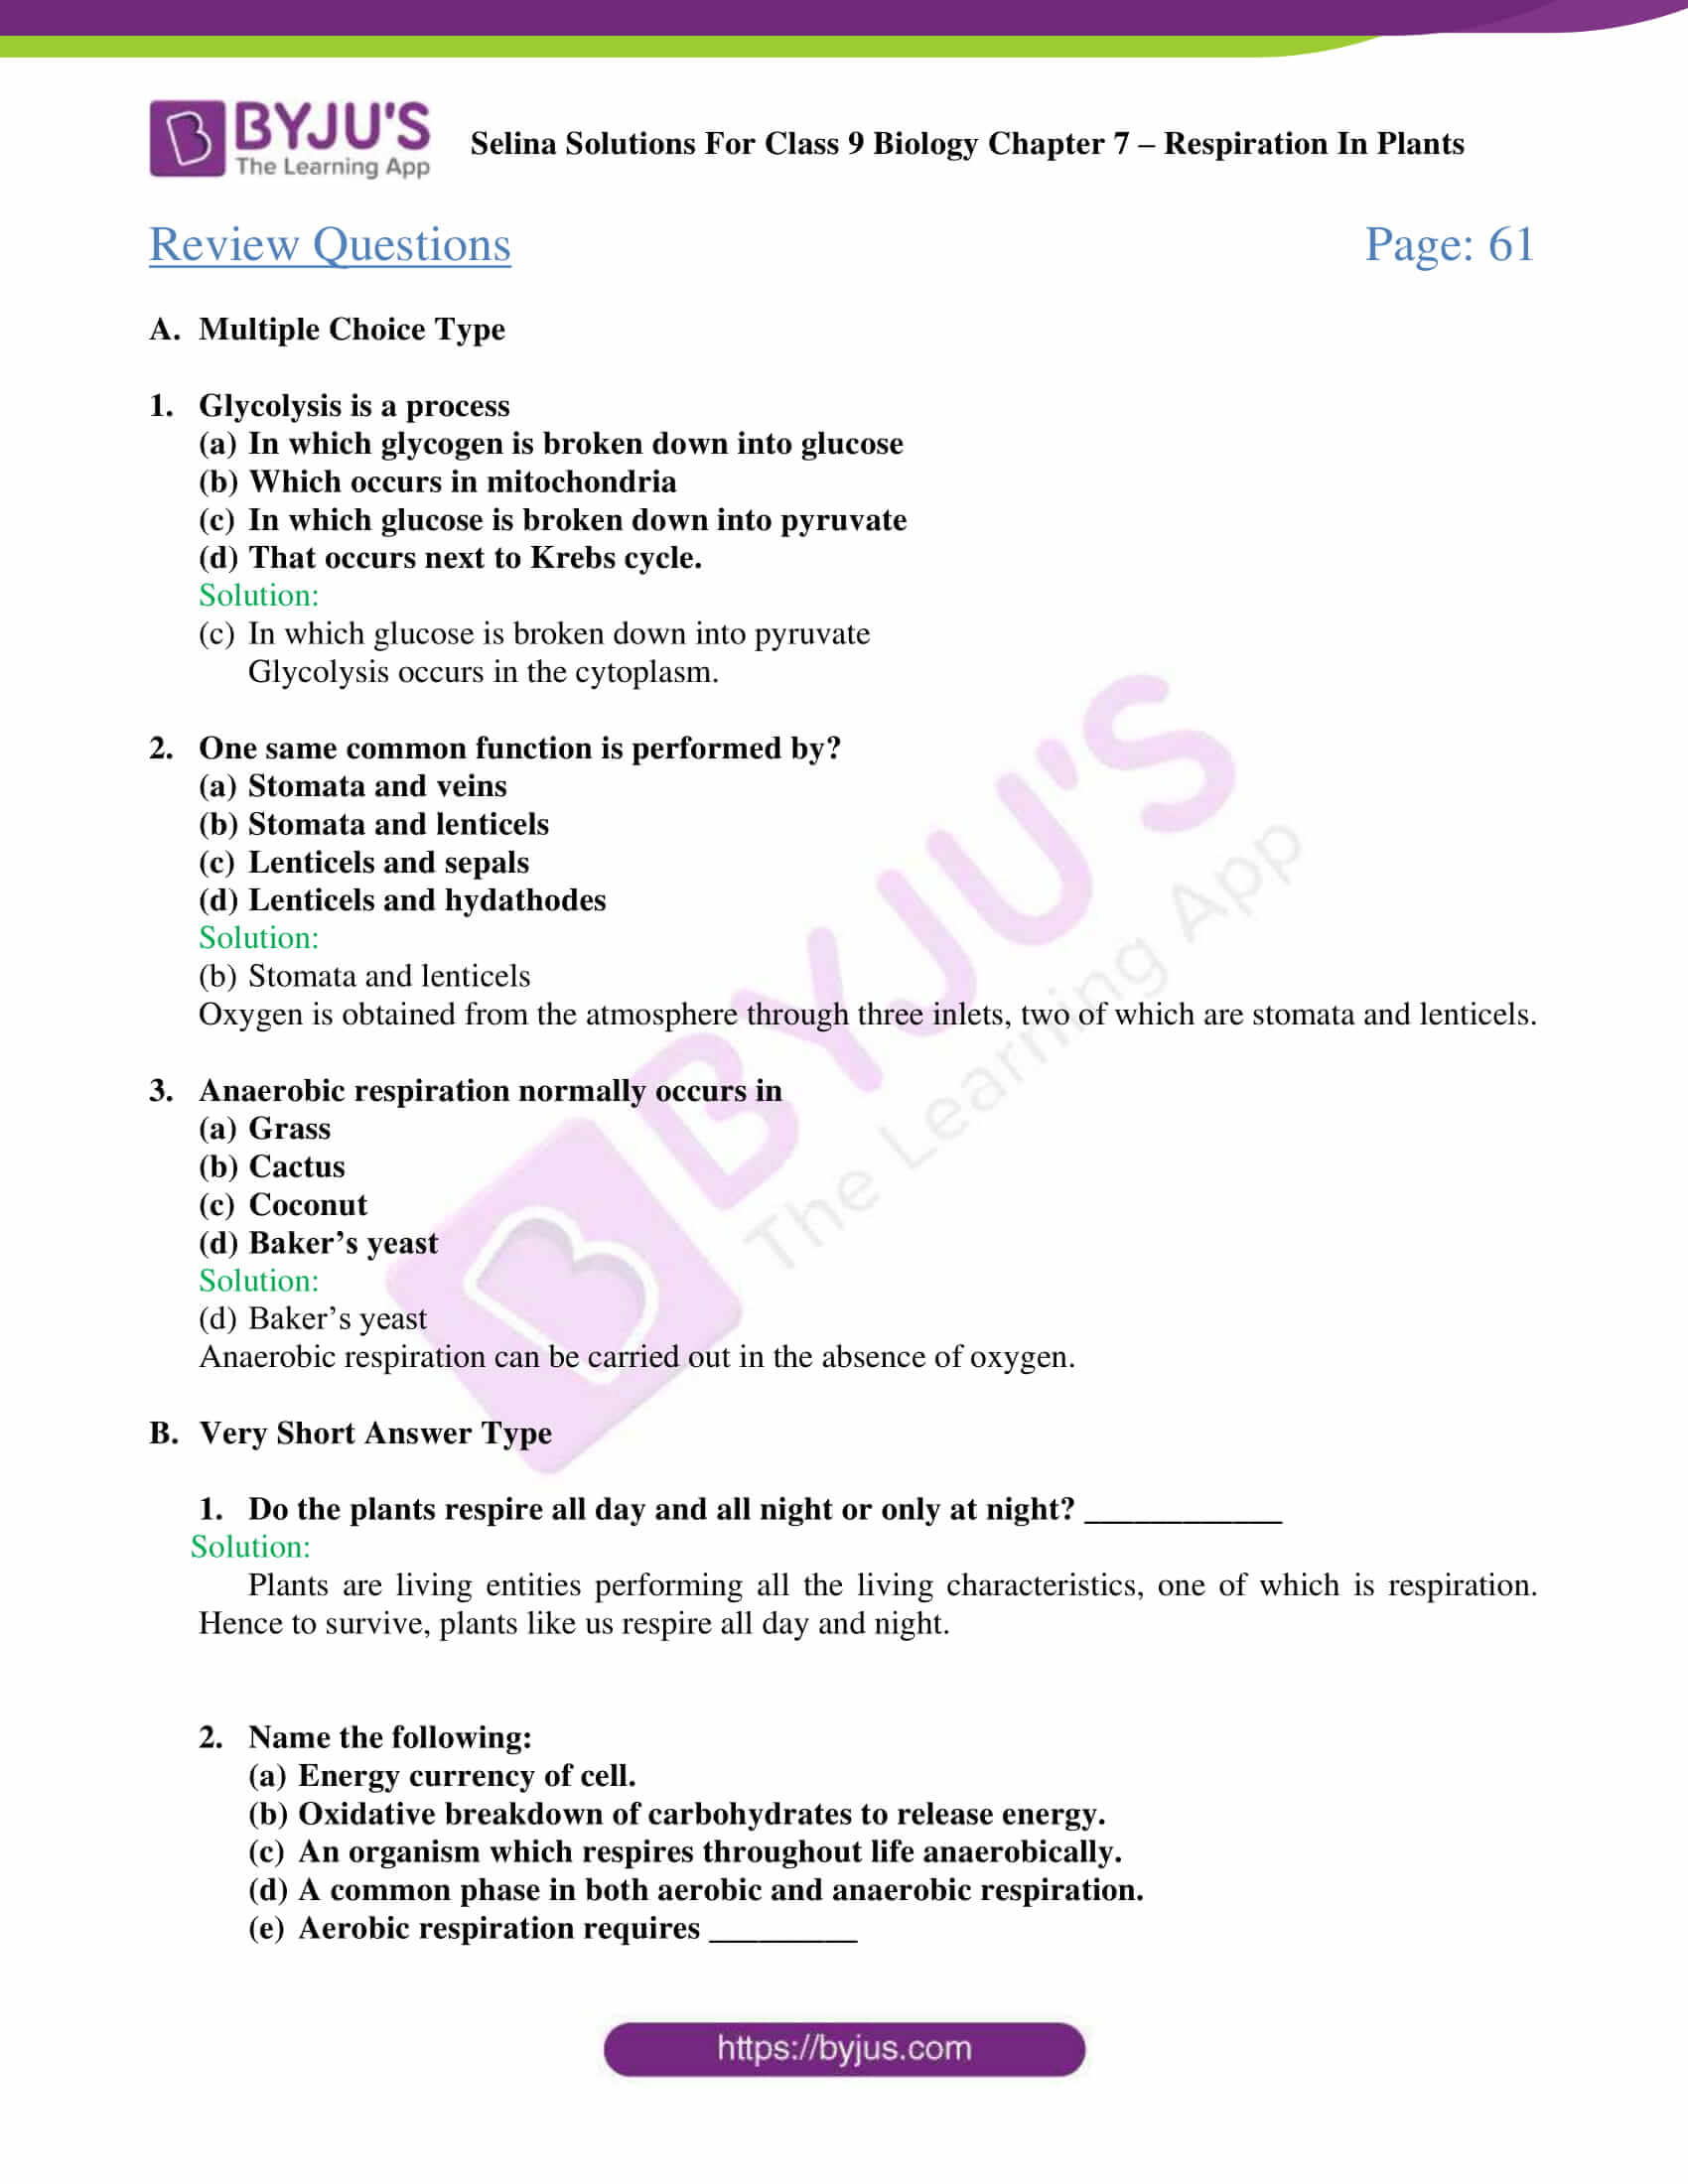 Selina Solutions For Class 9 Biology Chapter 7 Respiration In Plants part 05